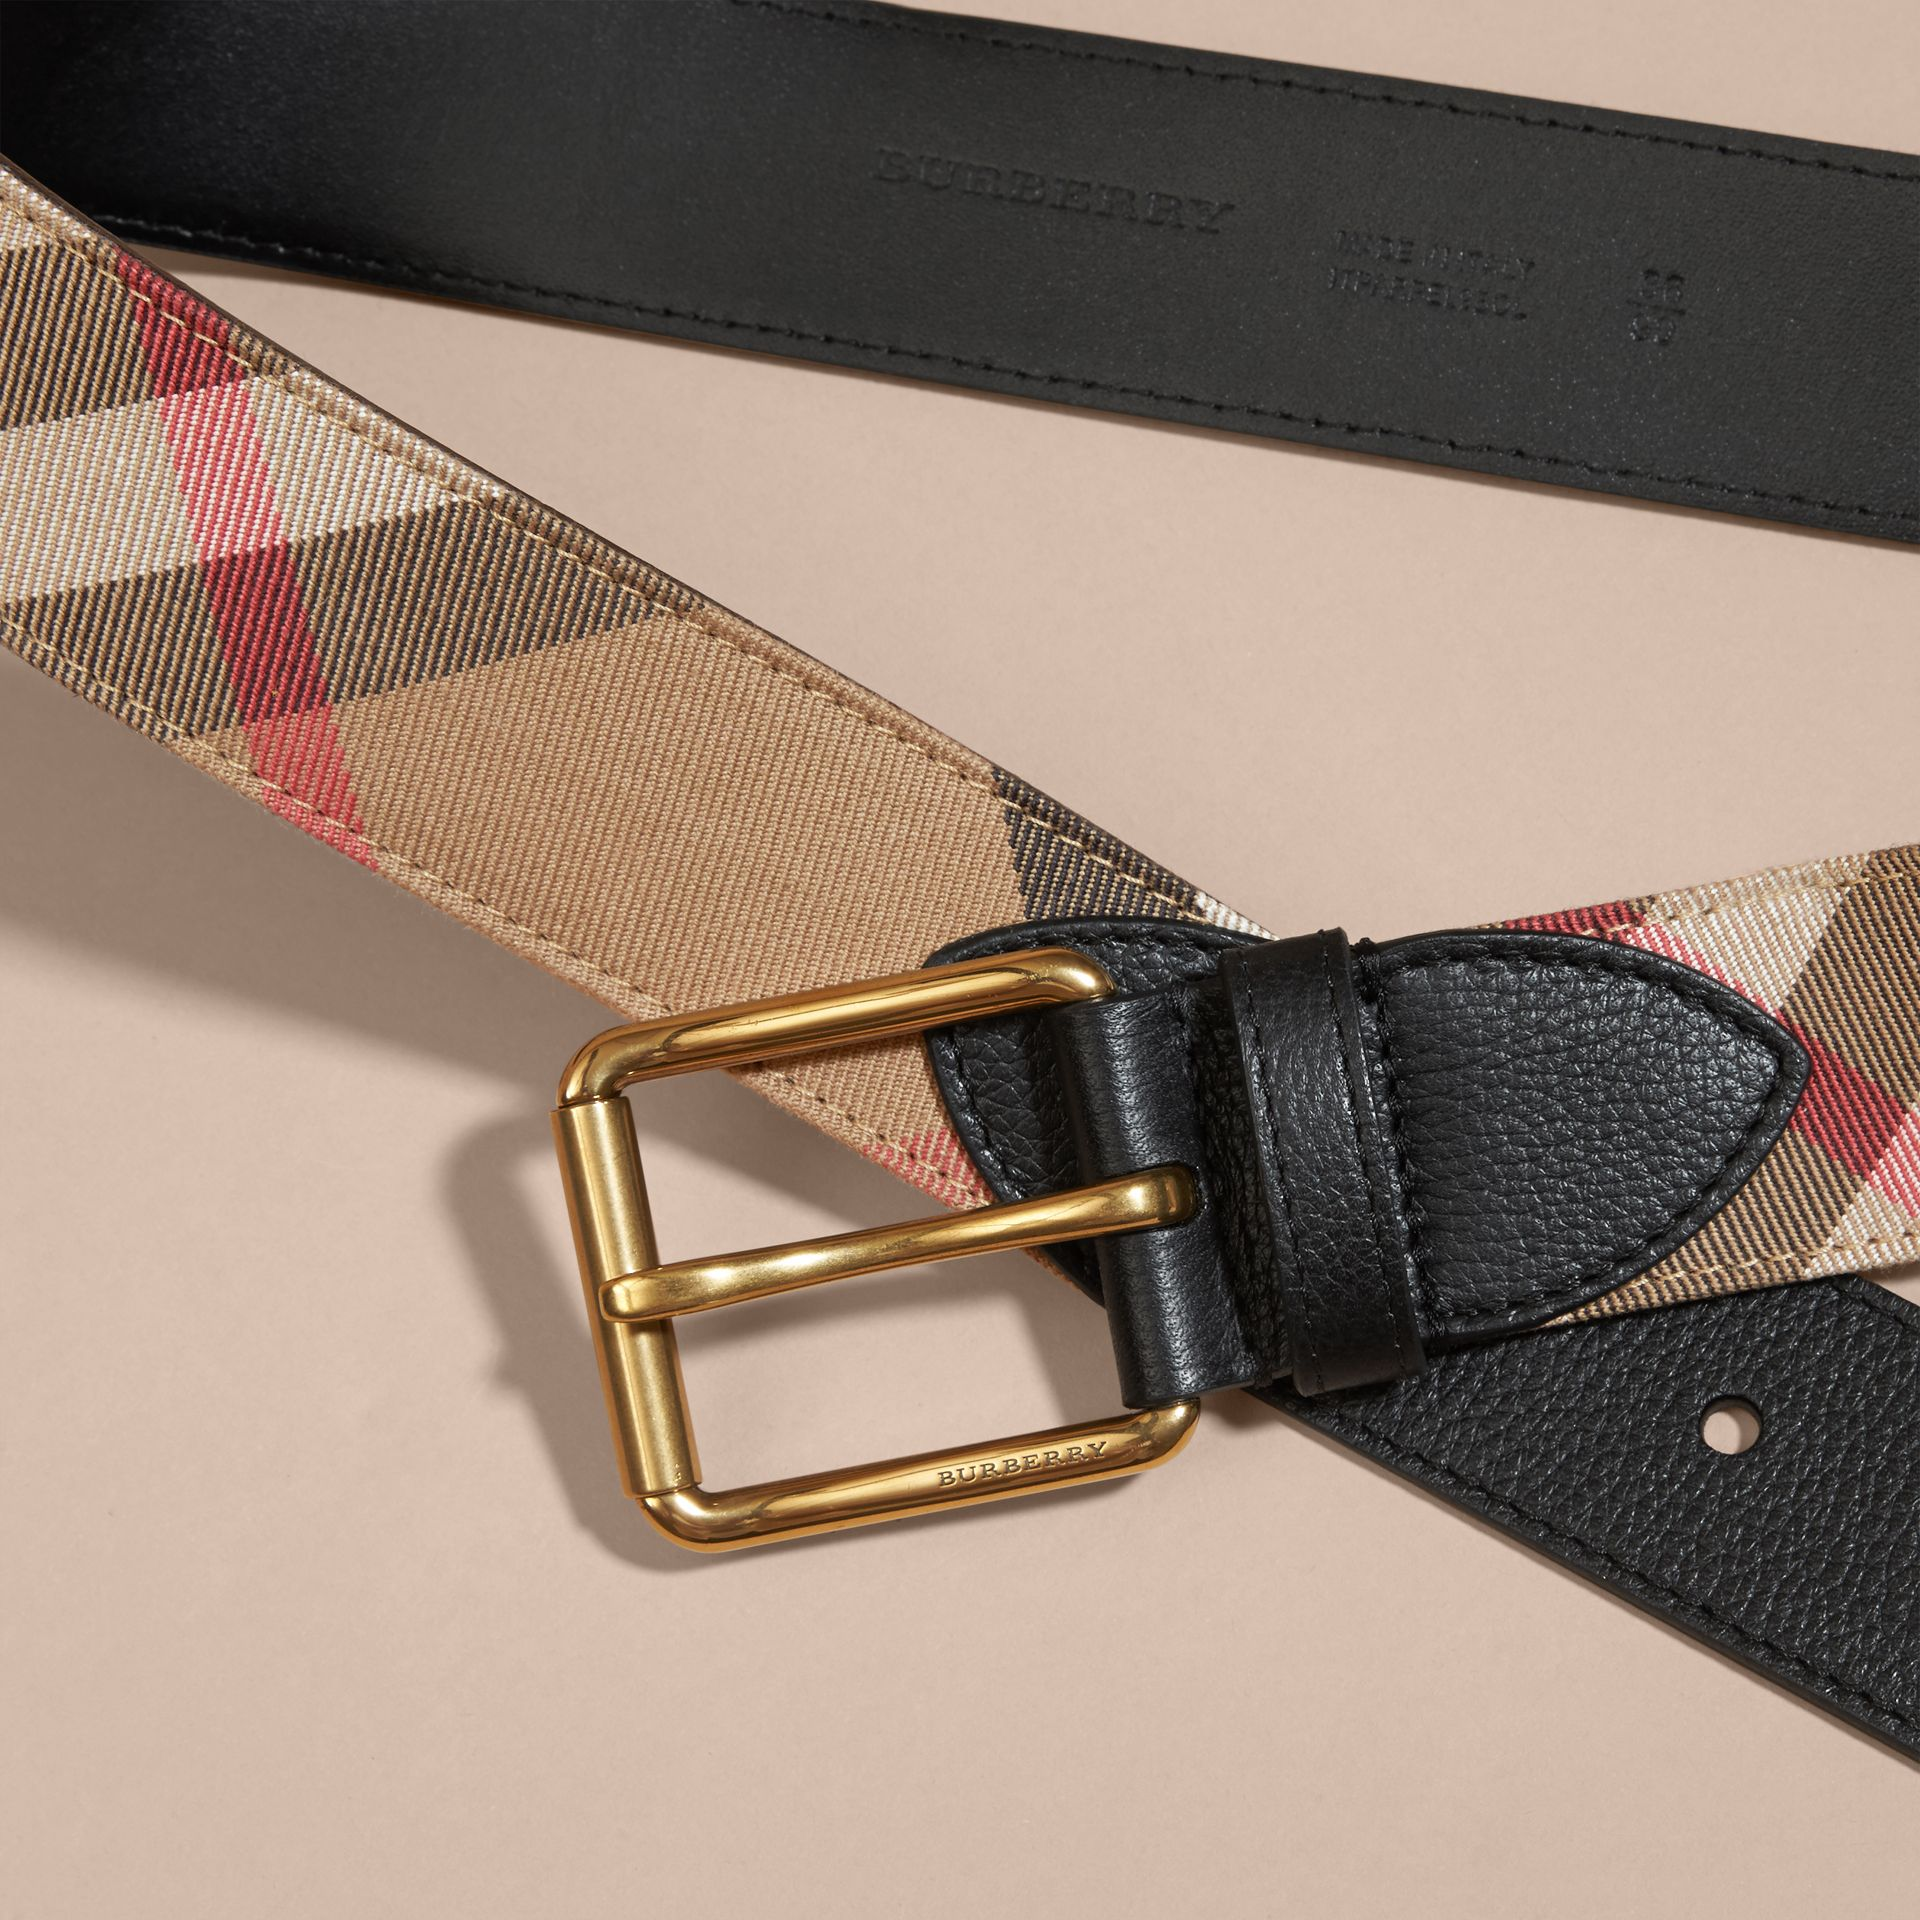 Ceinture en coton House check et cuir - Homme | Burberry - photo de la galerie 2